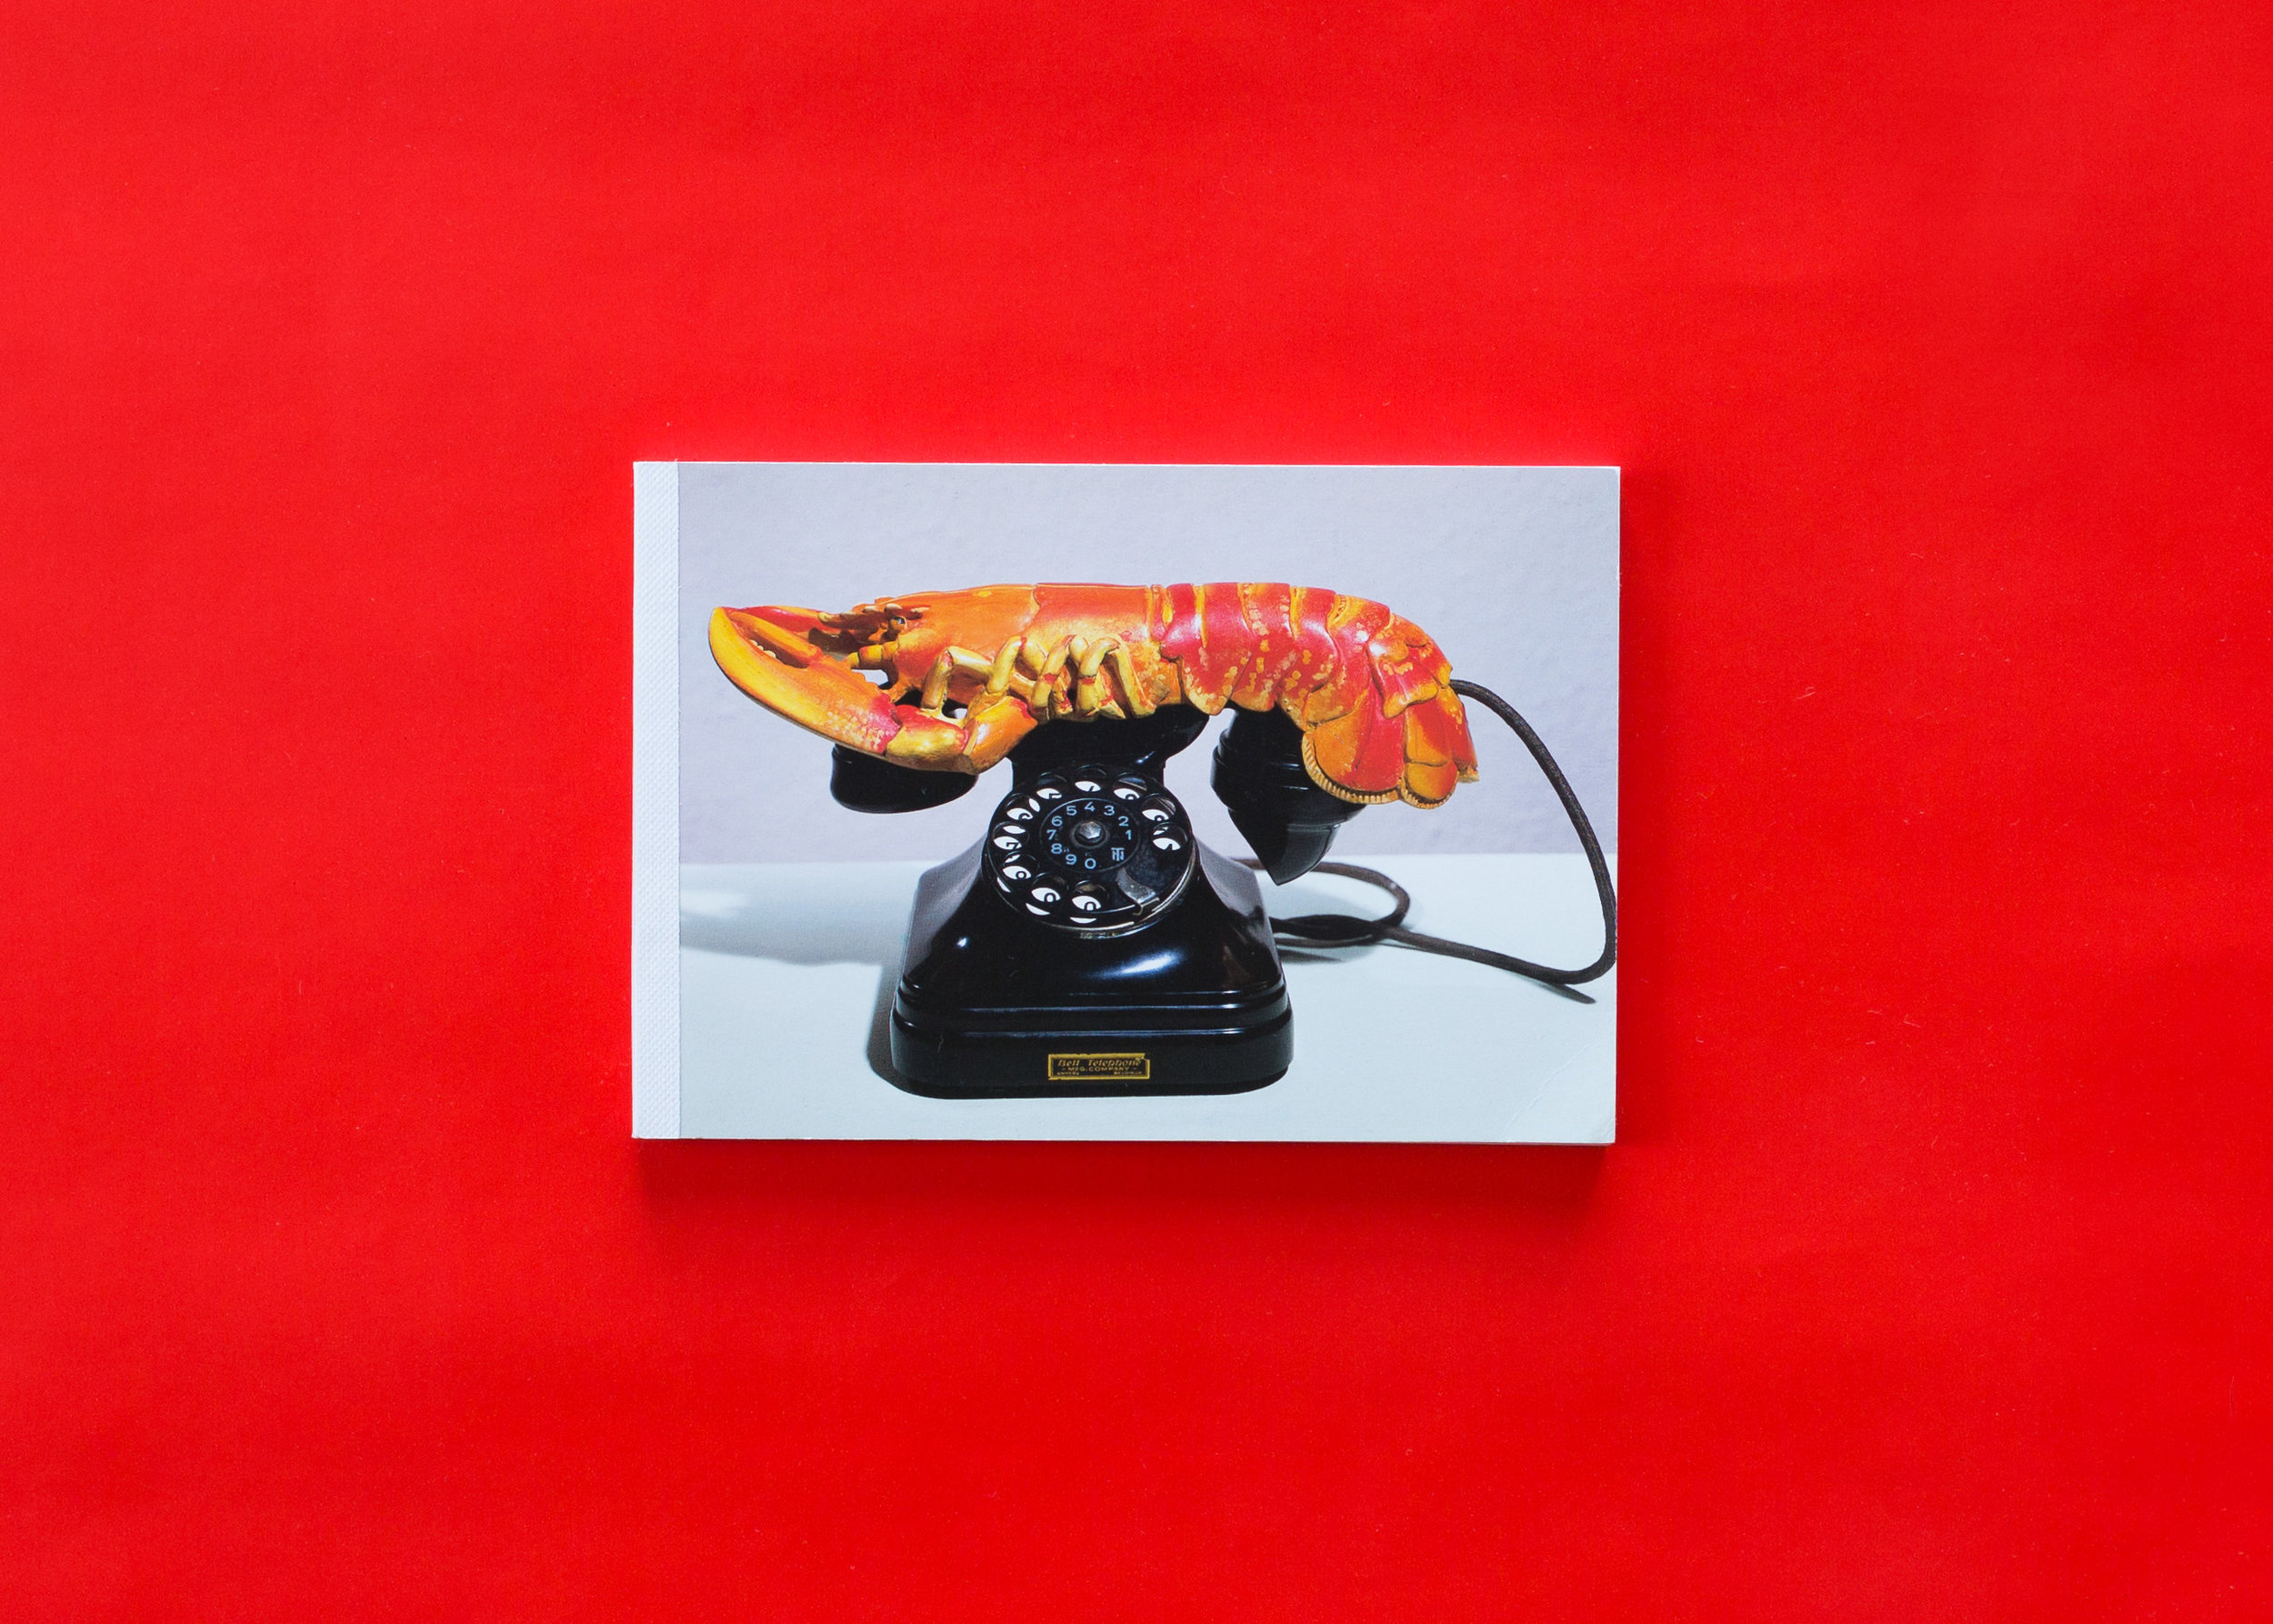 Notebook with Dali's Lobster Telephone image on cover.